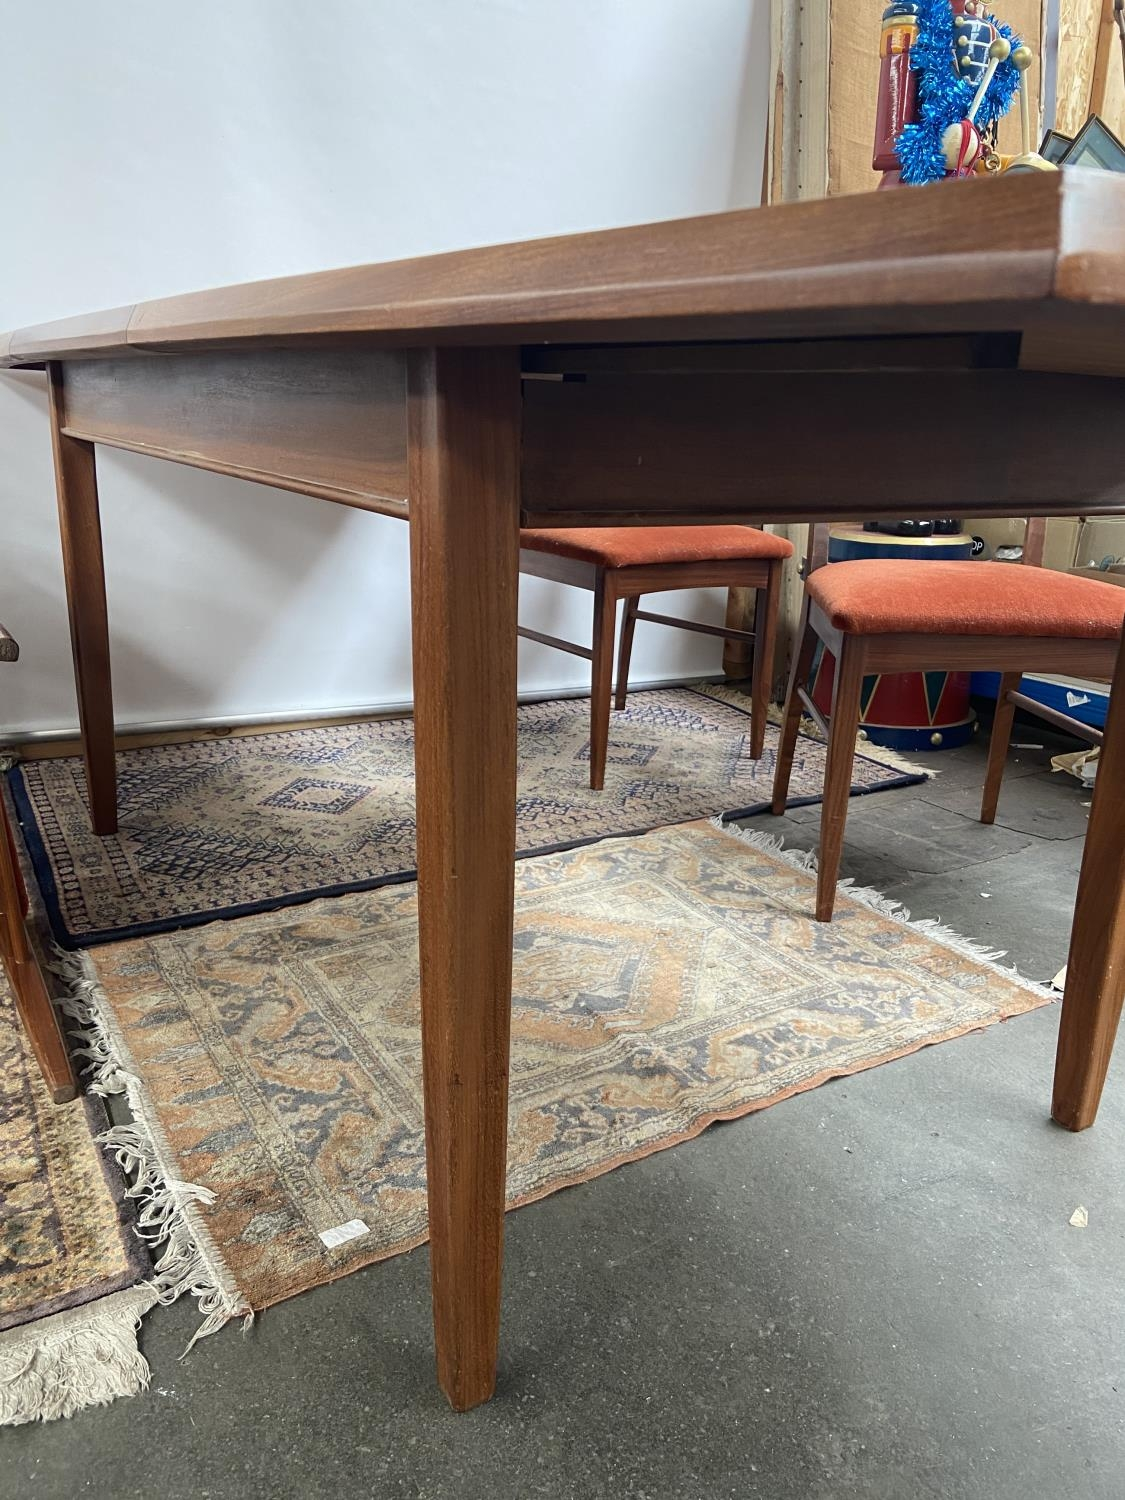 A Retro mid century teak dining table and four matching chairs produced by Vanson. [Table extended - Image 12 of 13